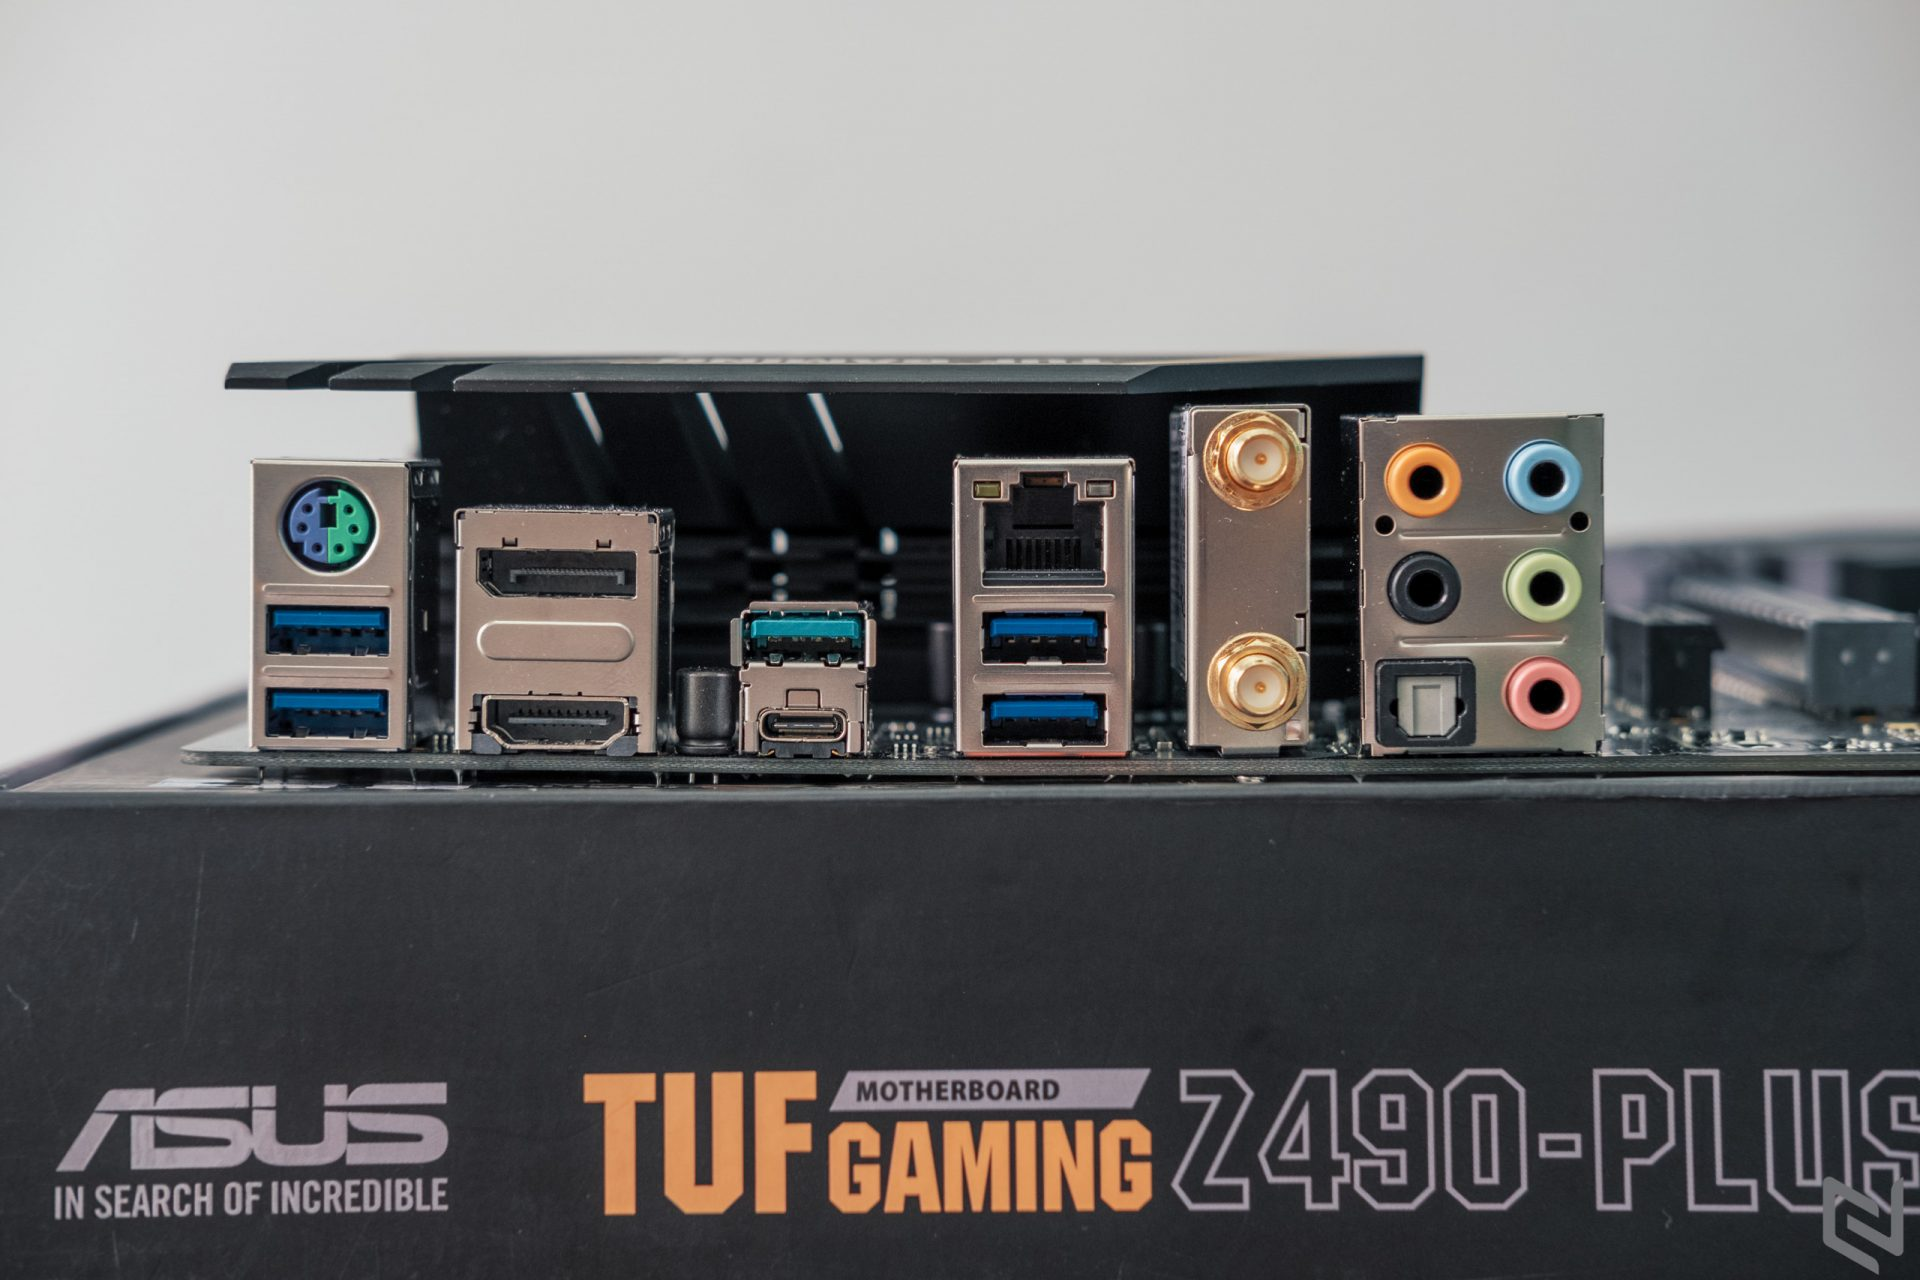 tuf-gaming-z490-plus-945-1920x1280-jpg.10424